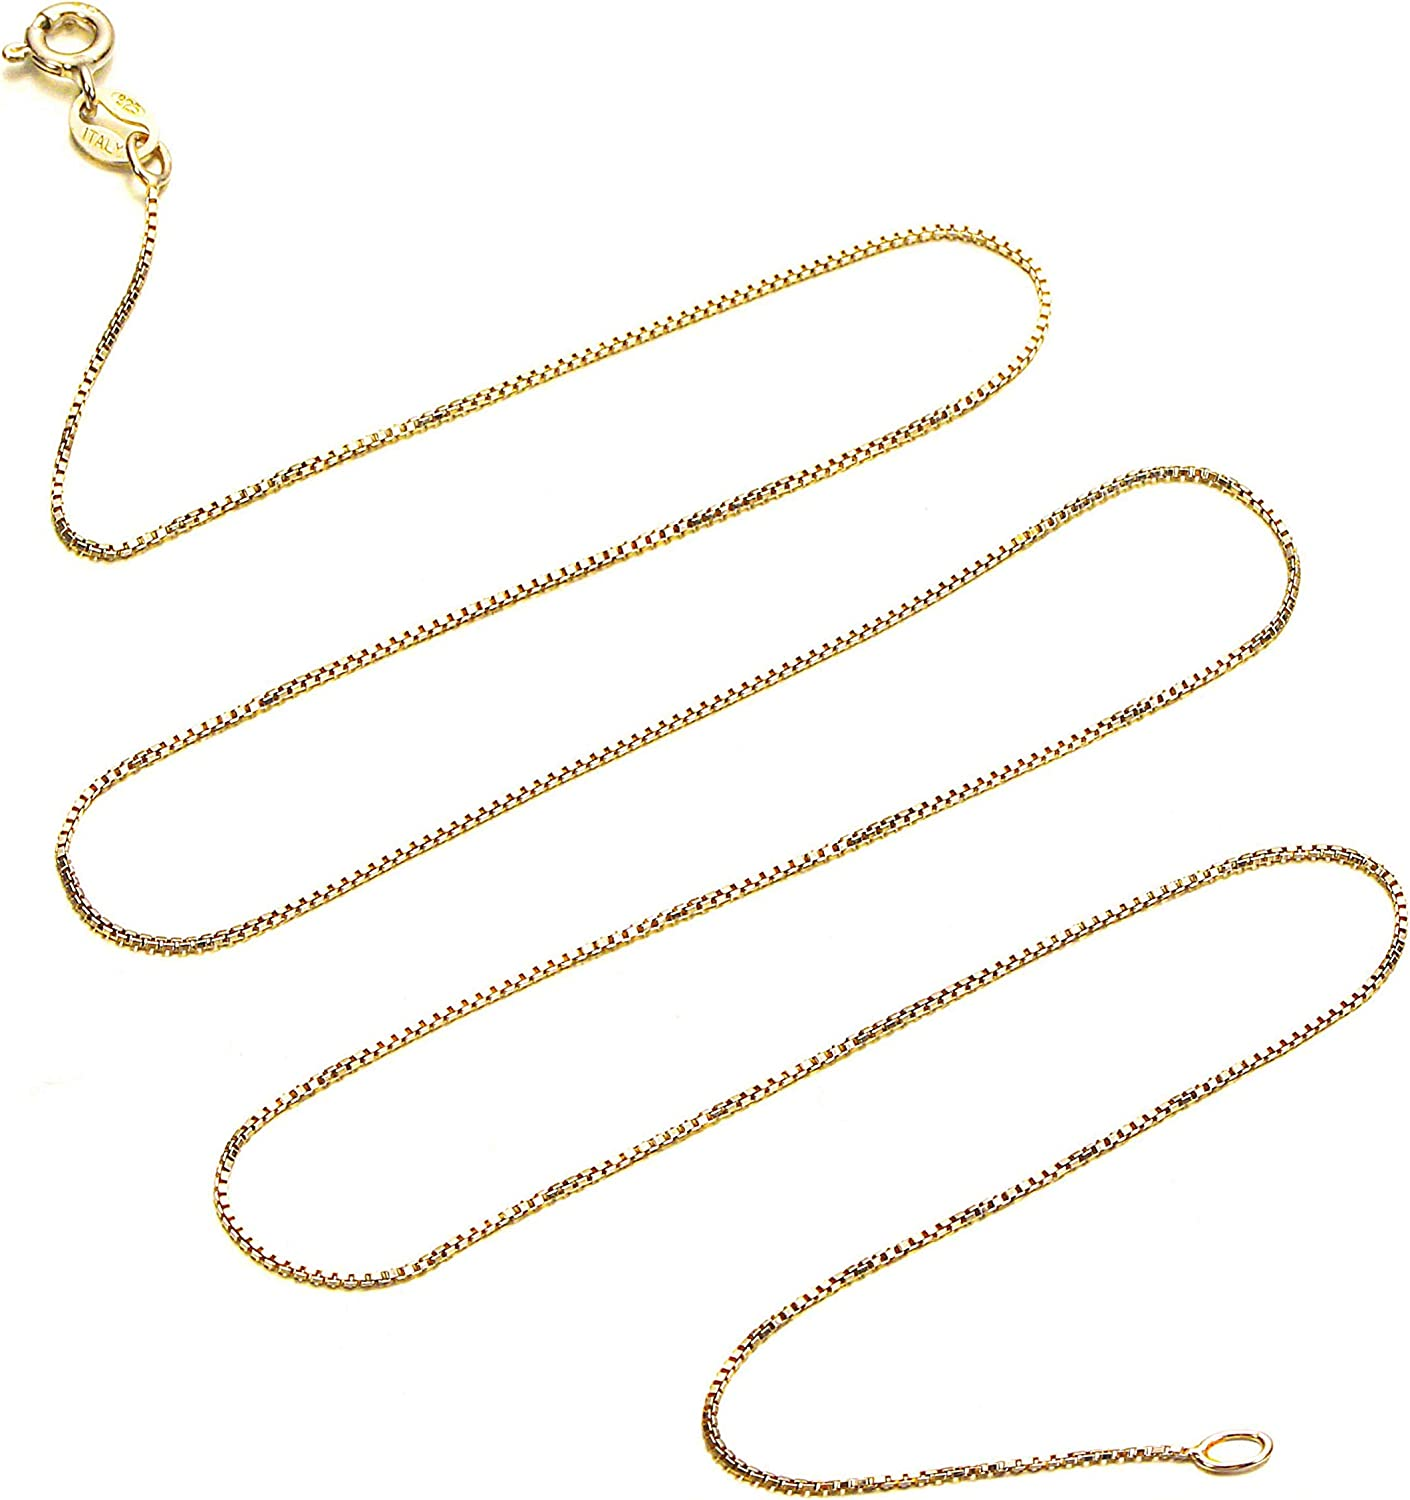 Kezef 18k Gold Over Sterling Silver 1mm Box Chain Necklace Made in Italy Available 14 inch 40 inch